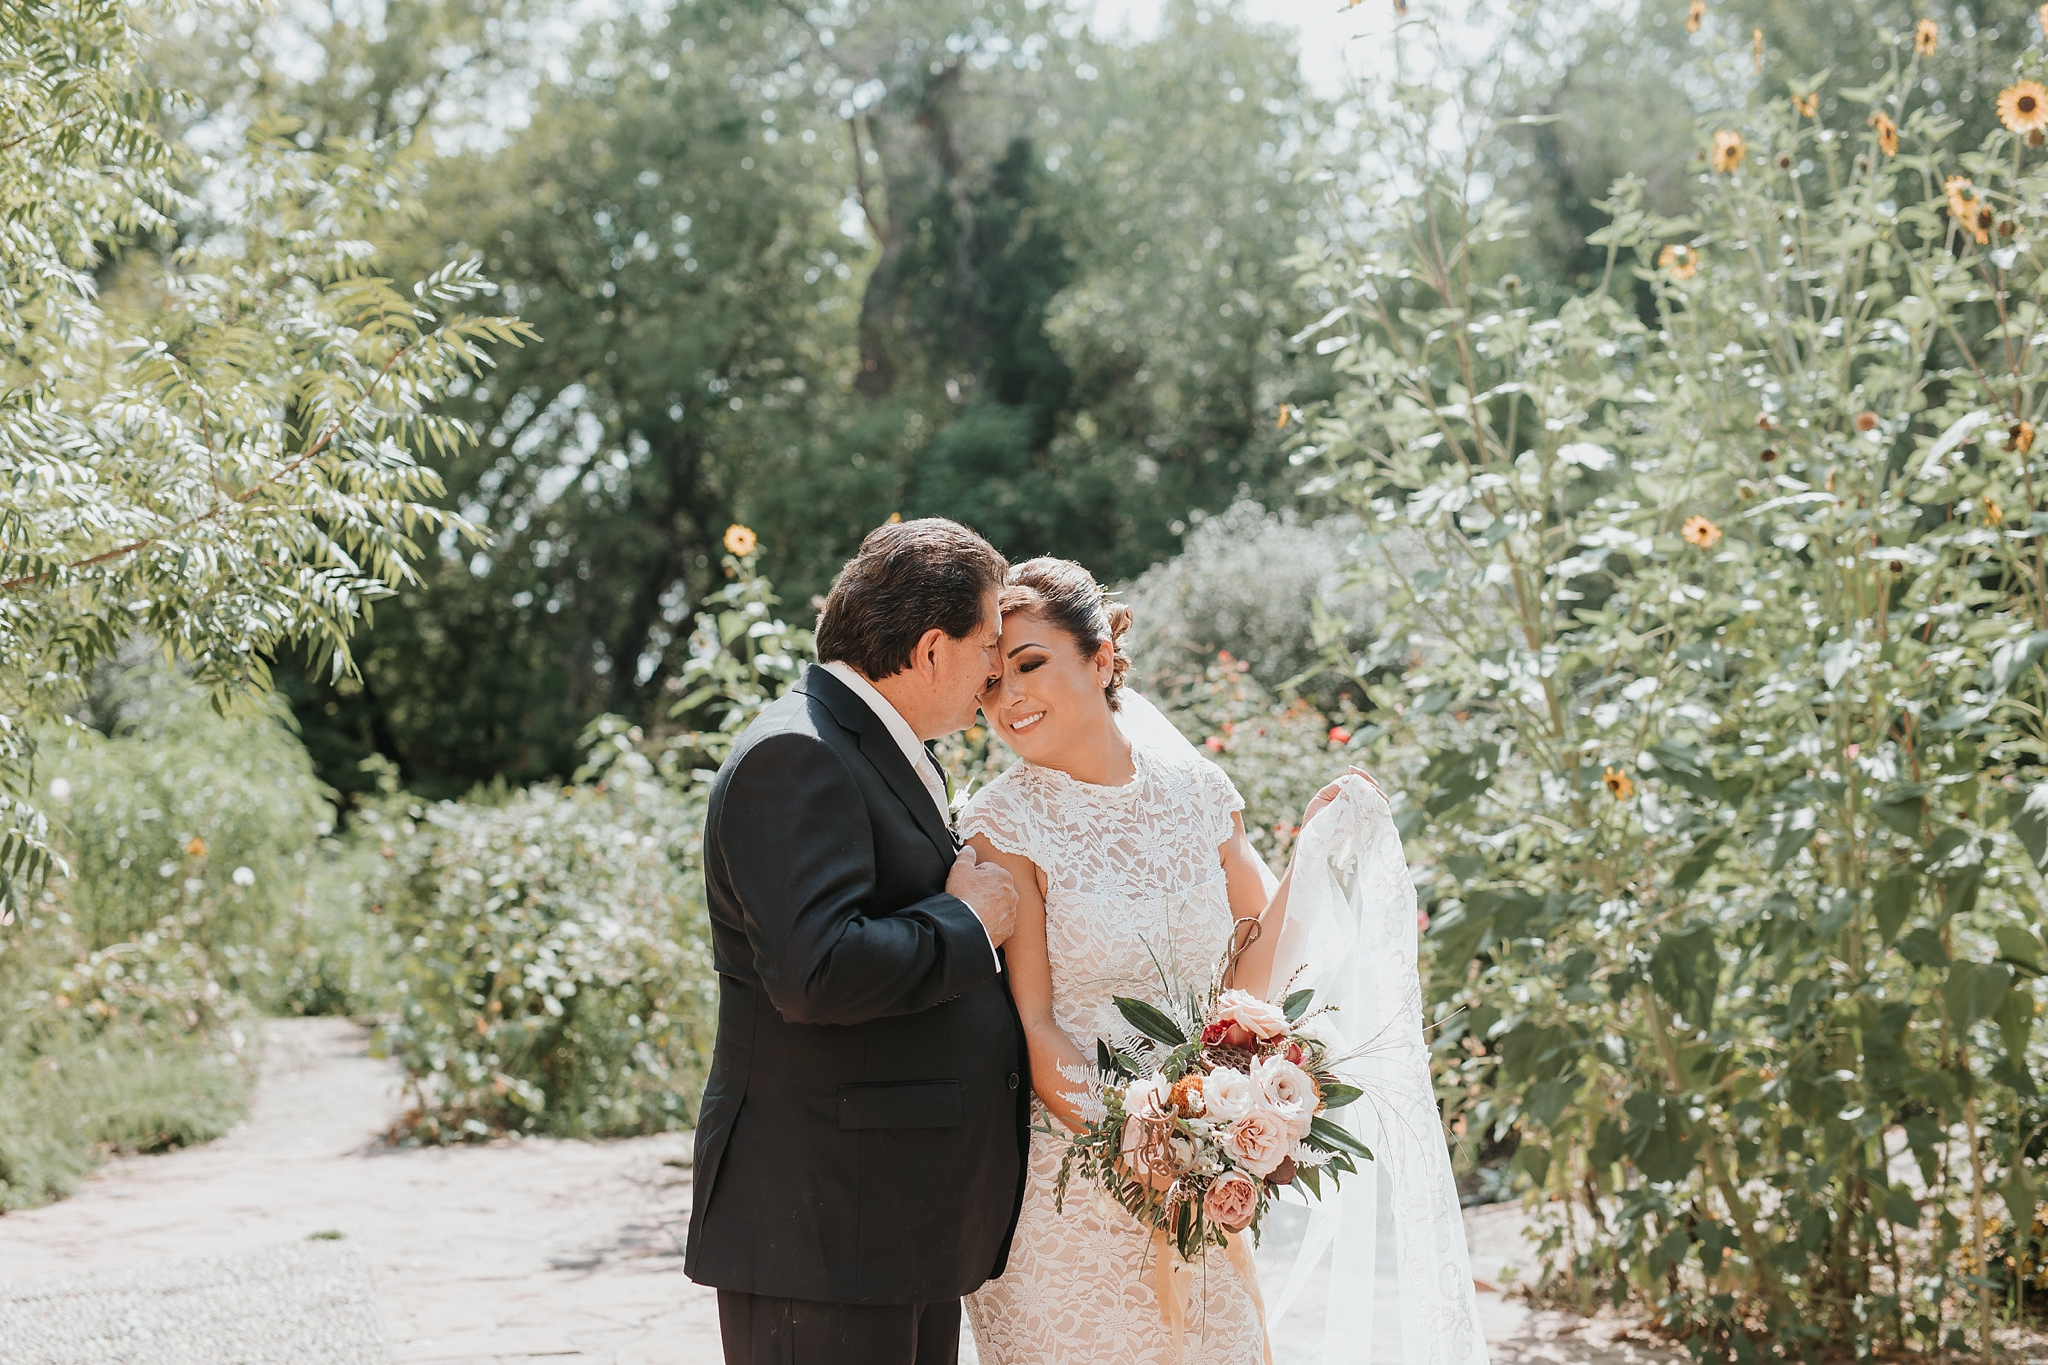 Alicia+lucia+photography+-+albuquerque+wedding+photographer+-+santa+fe+wedding+photography+-+new+mexico+wedding+photographer+-+new+mexico+wedding+-+wedding+makeup+-+makeup+artist+-+wedding+makeup+artist+-+bridal+makeup_0028.jpg